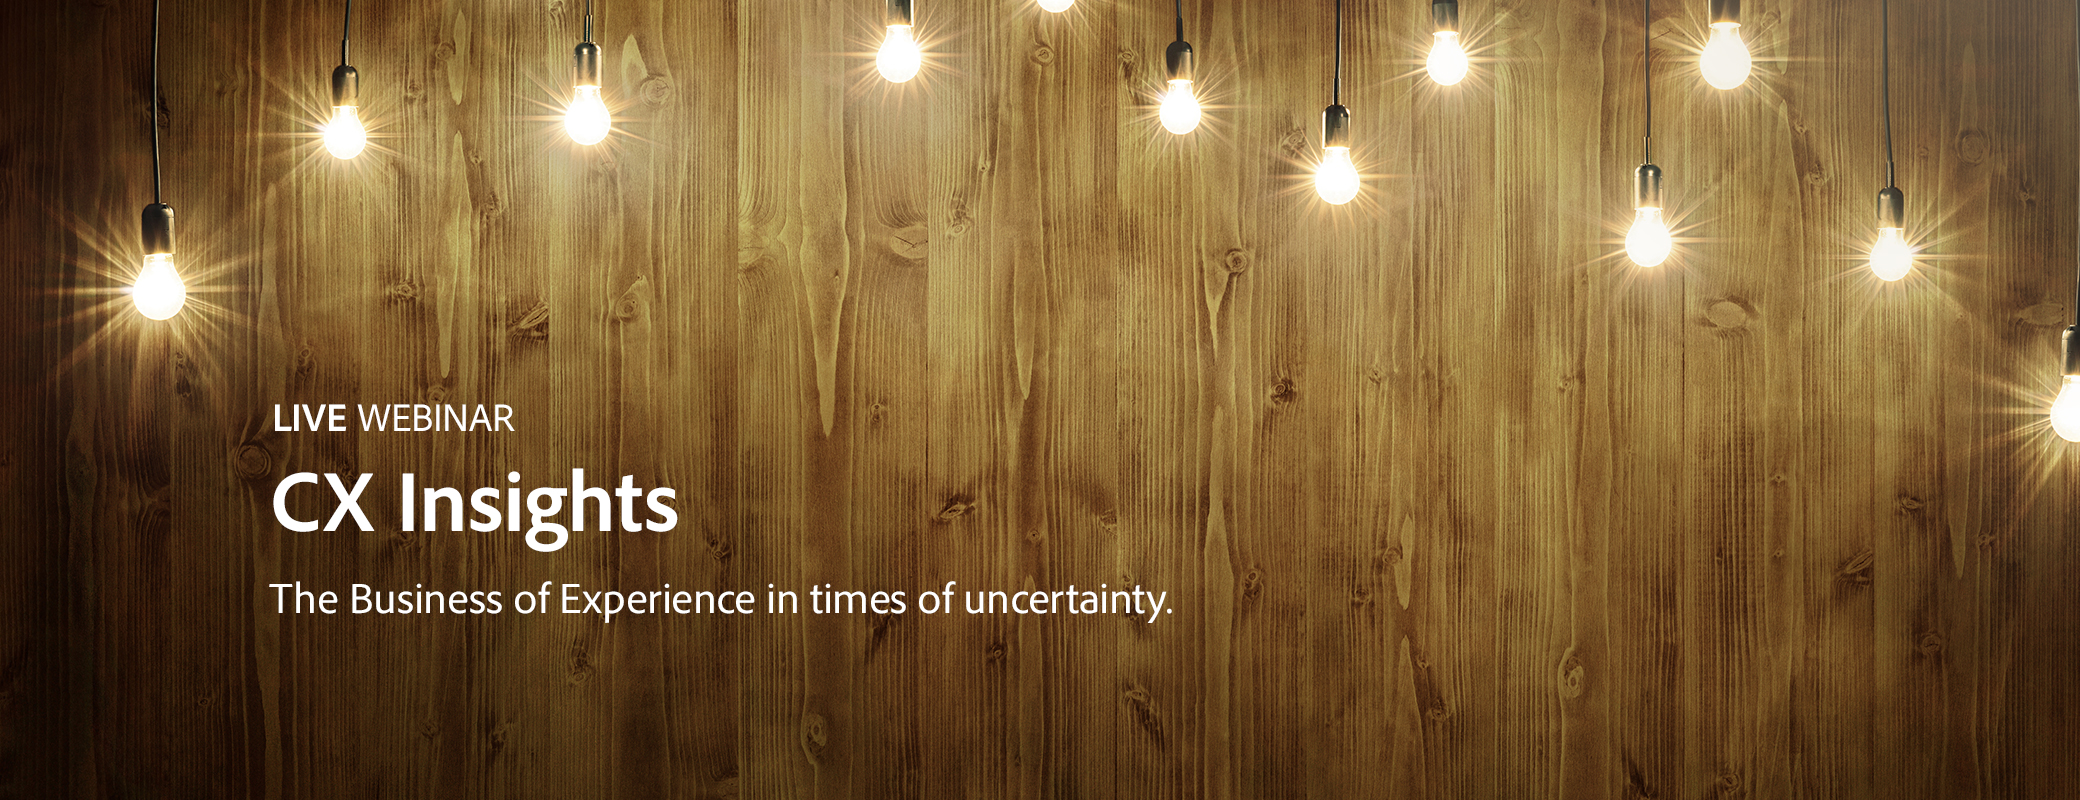 The Business of Experience in times of uncertainty.